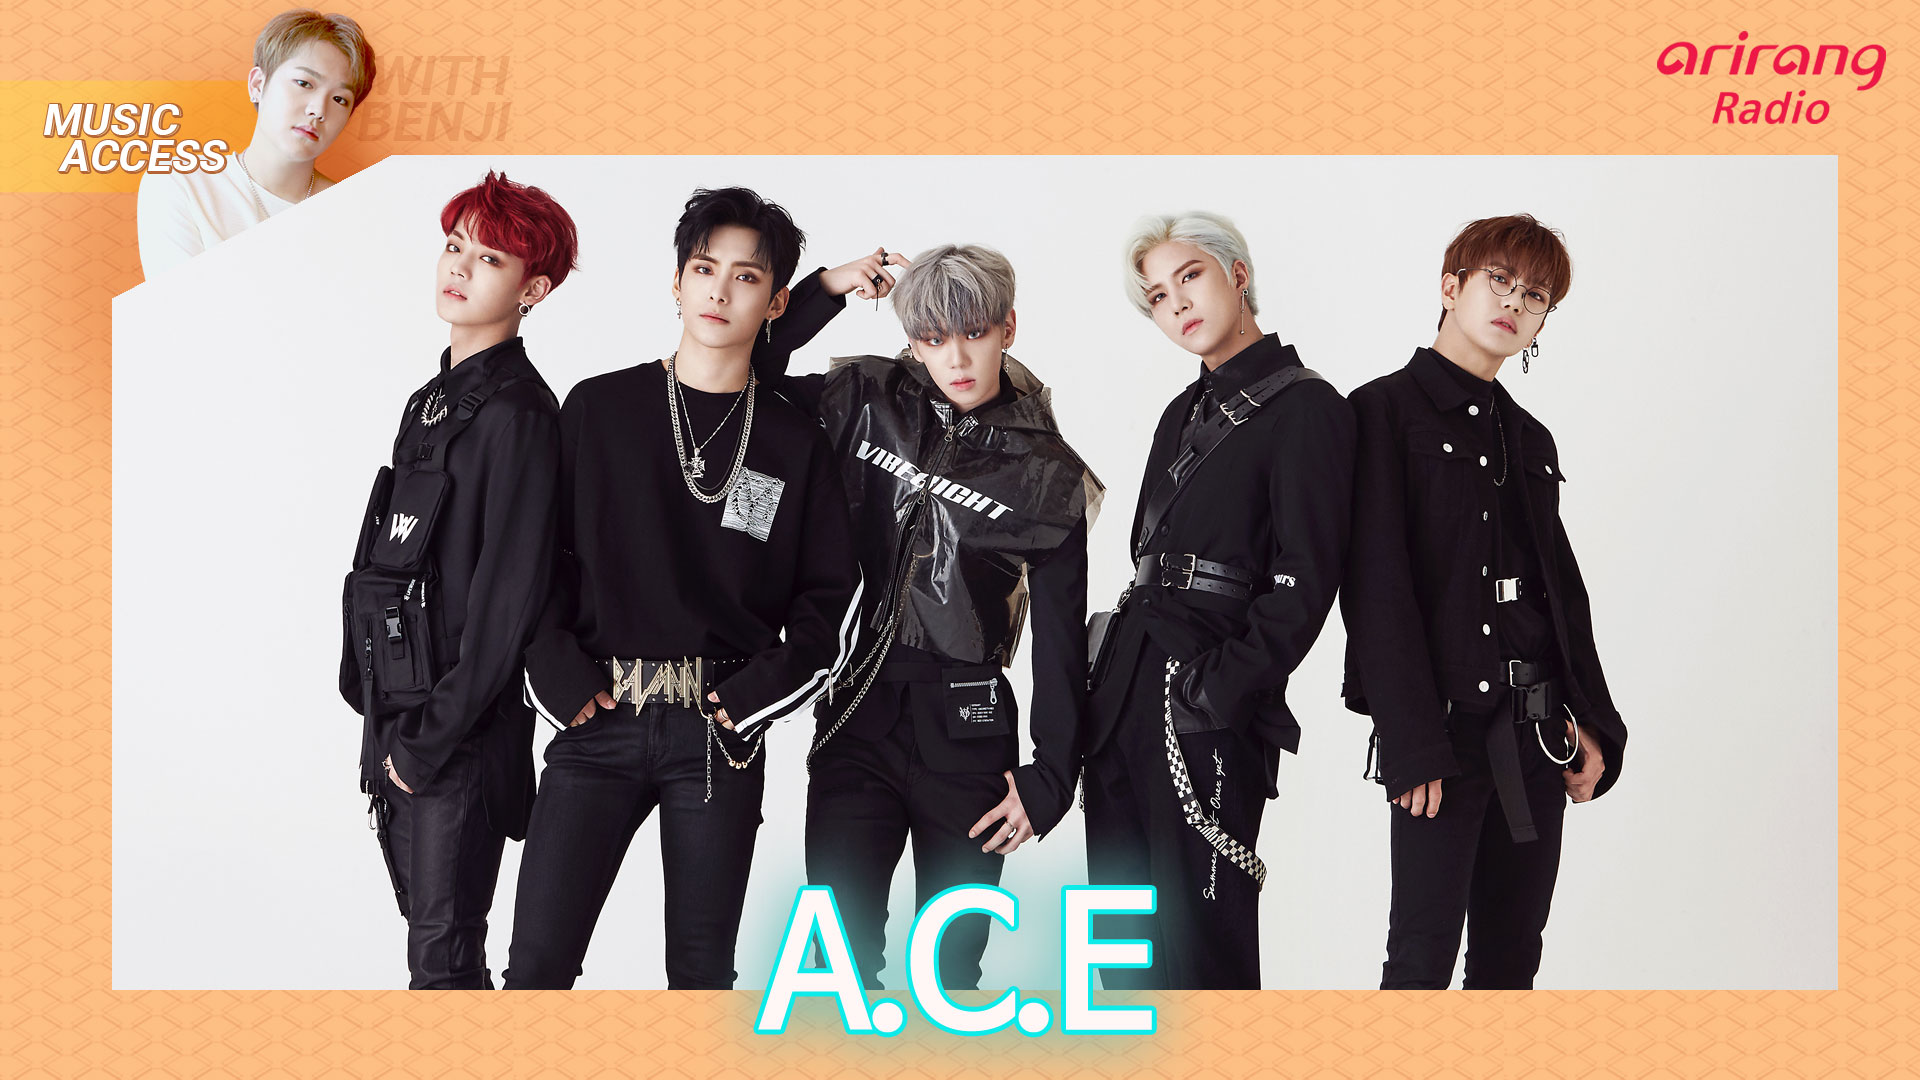 Arirang Radio (Music Access / A.C.E)